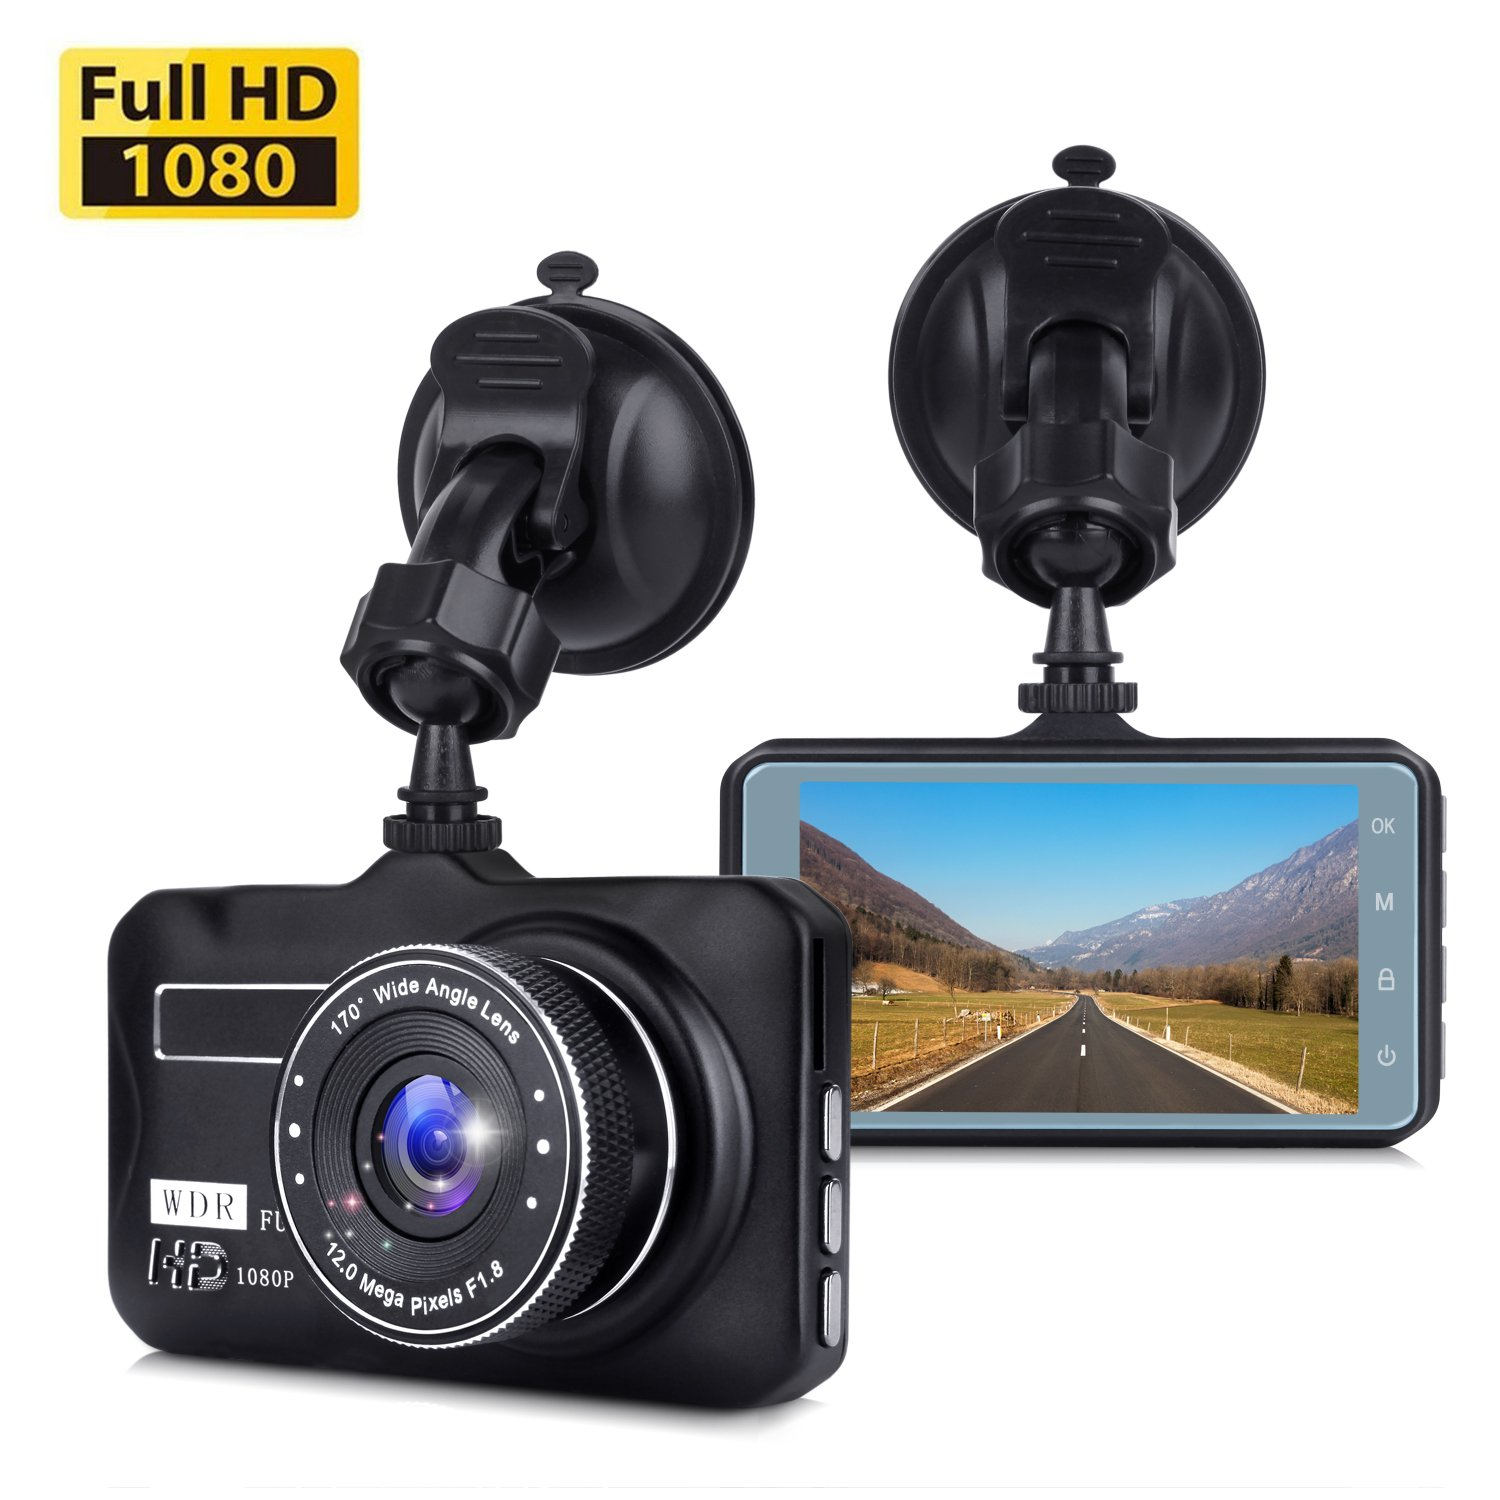 Dash Cam, Dashboard Camera with Full HD 1080P, Car DVR Driving Recorder with WDR, 170 Degree Wide Angle, 3'' LCD, Loop Recording, G-Sensor, Night Vision